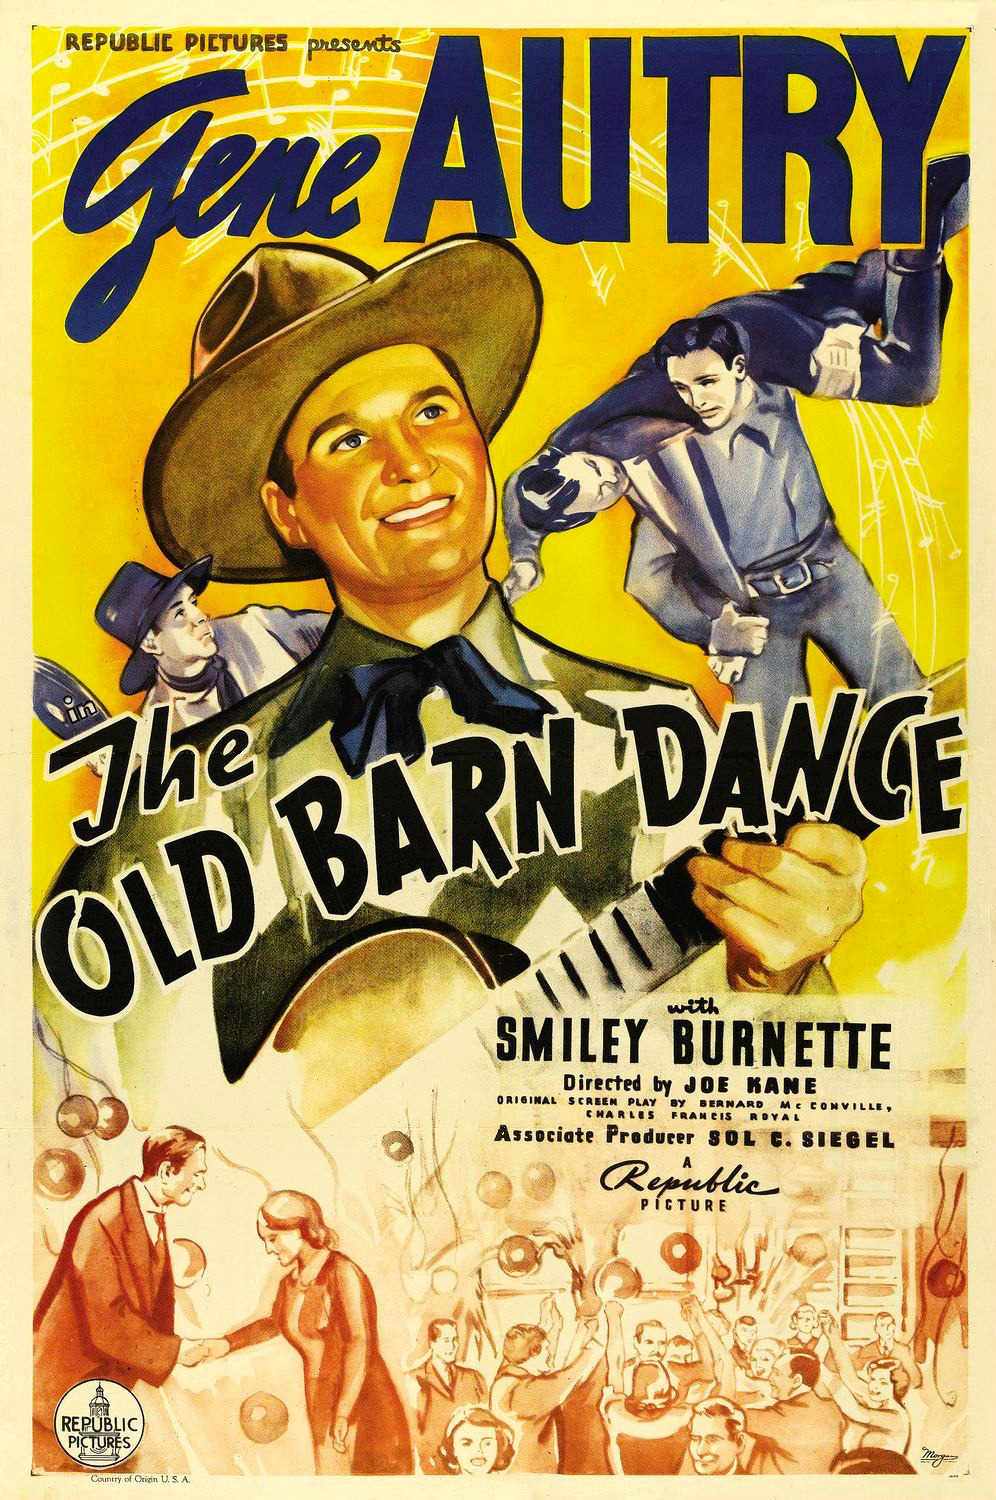 File:The Old Barn Dance.jpg - Wikimedia Commons